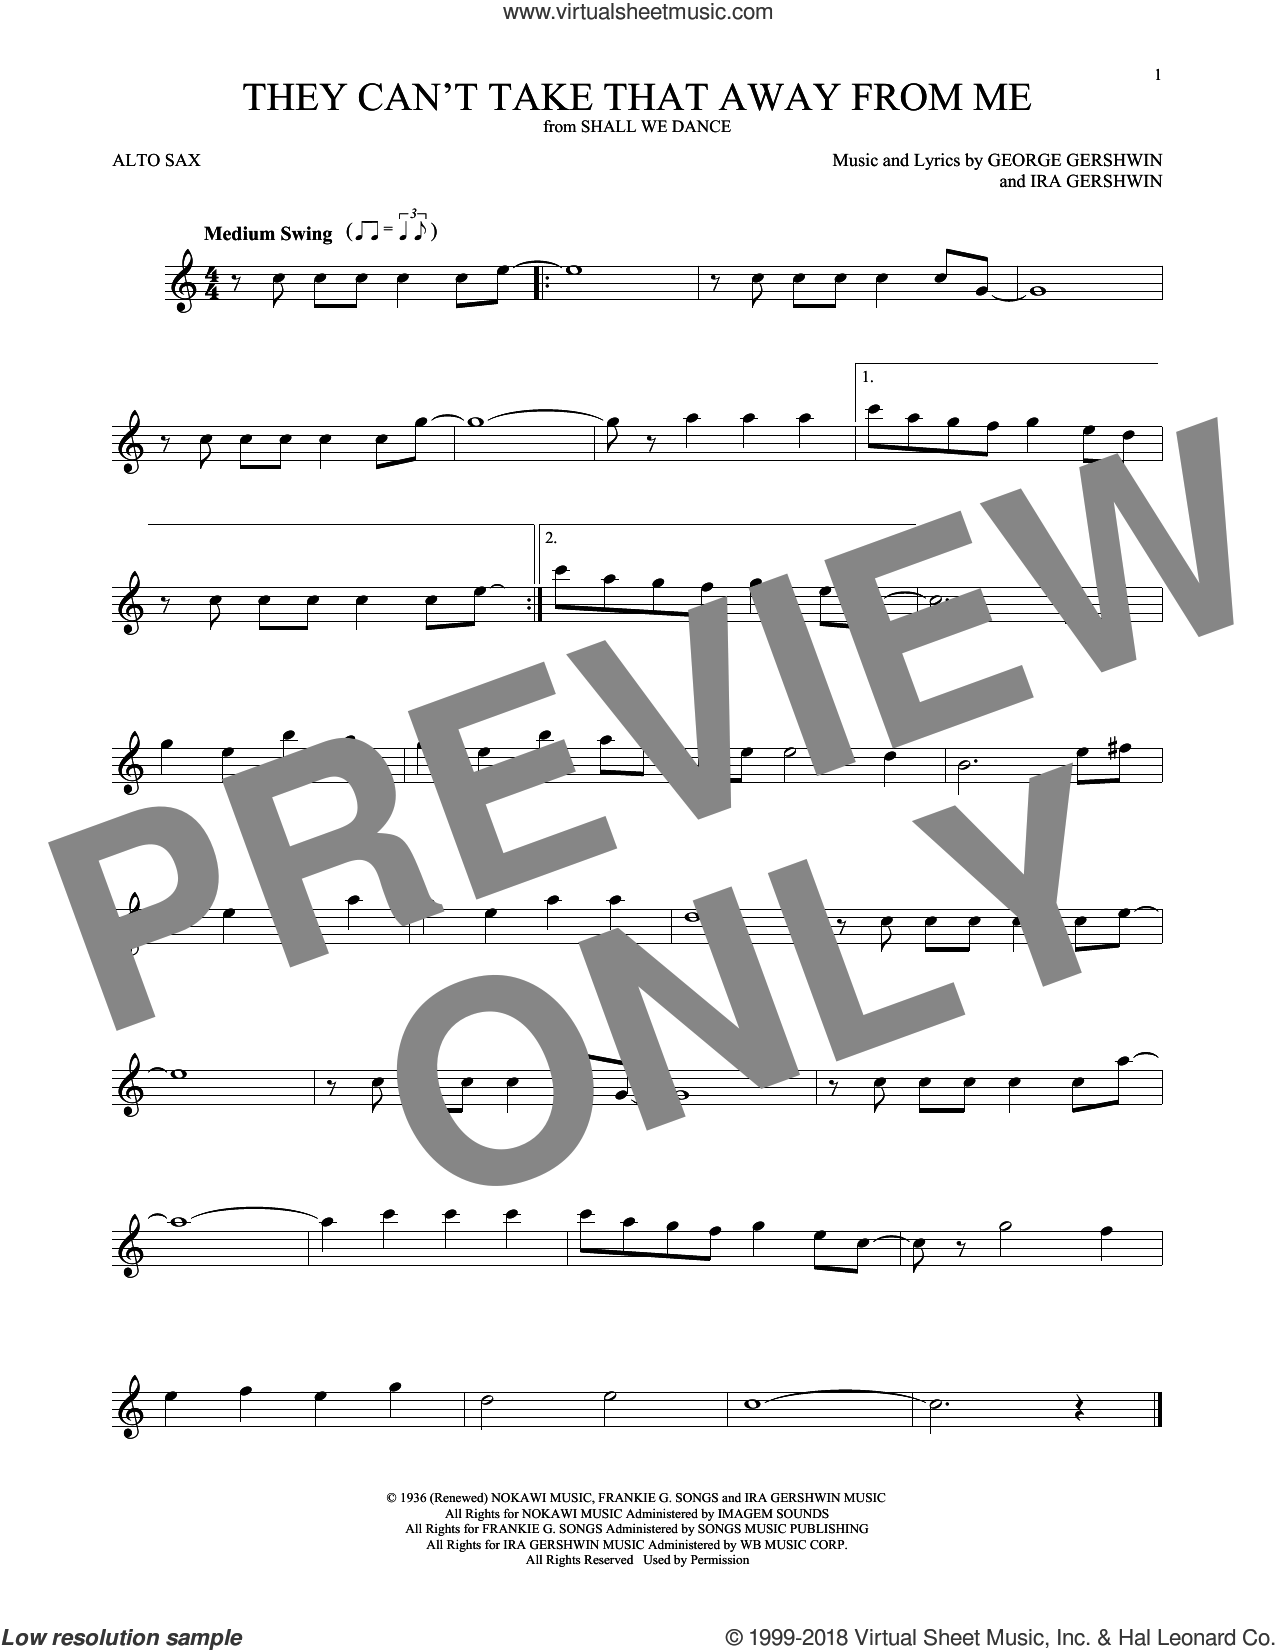 They Can't Take That Away From Me sheet music for alto saxophone solo by Frank Sinatra, George Gershwin and Ira Gershwin, intermediate skill level